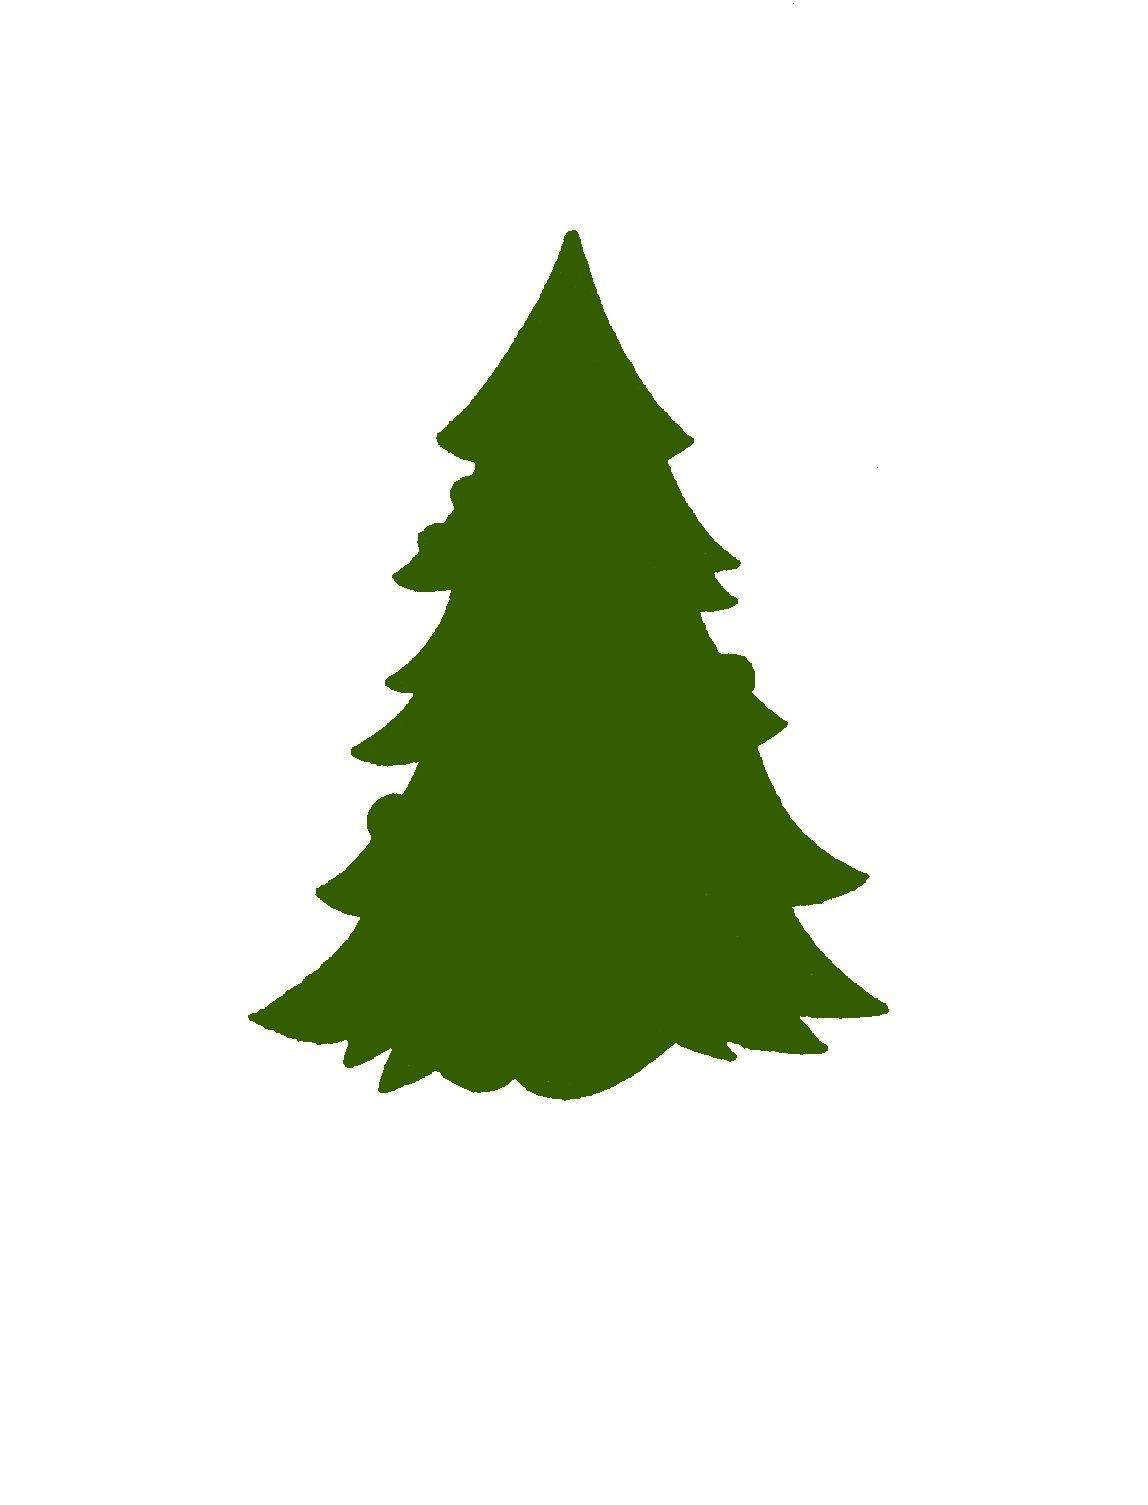 silhouette of pine trees at getdrawings com free for personal use rh getdrawings com pine tree clip art free pine tree clip art silhouette